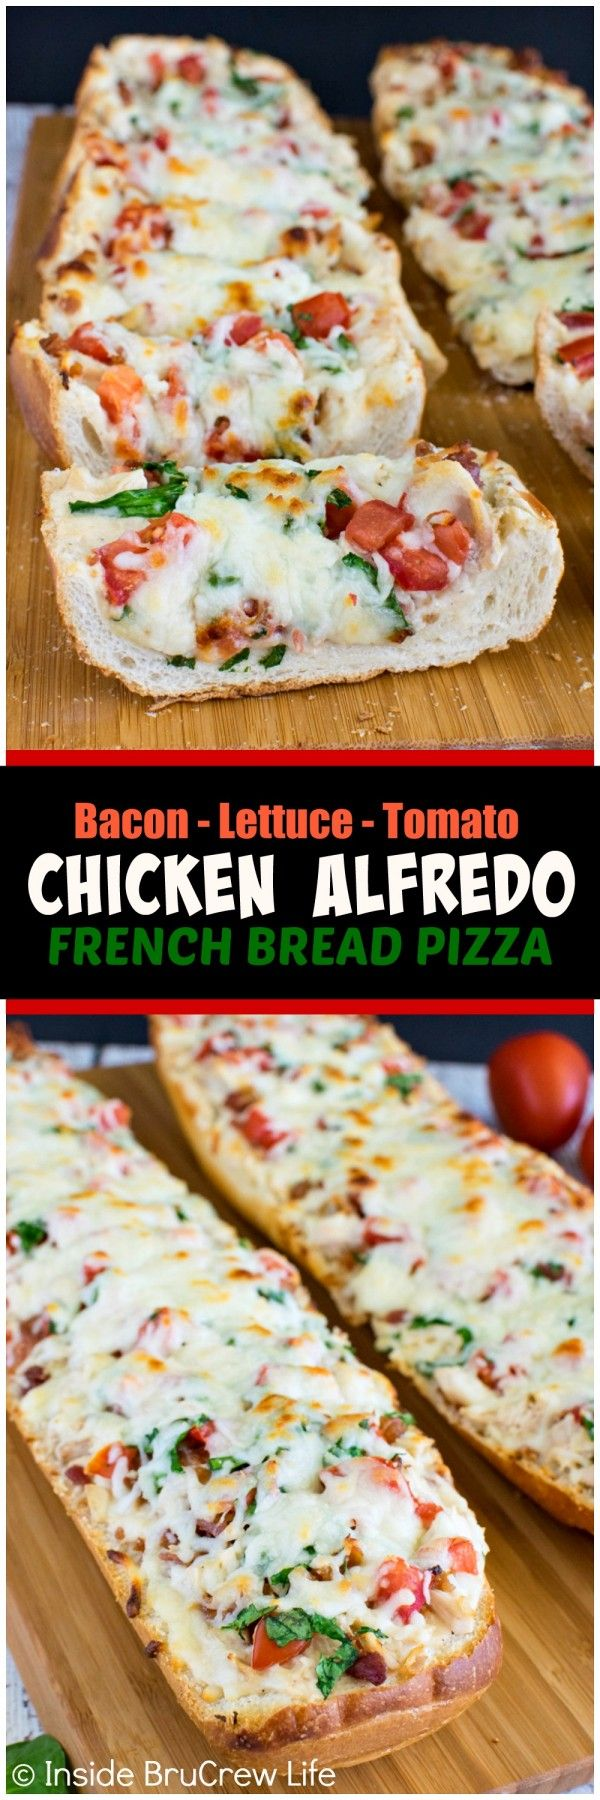 BLT Chicken Alfredo French Bread Pizza - this easy pizza is loaded with meat, veggies, and cheese.  Awesome dinner recipe for busy nights!